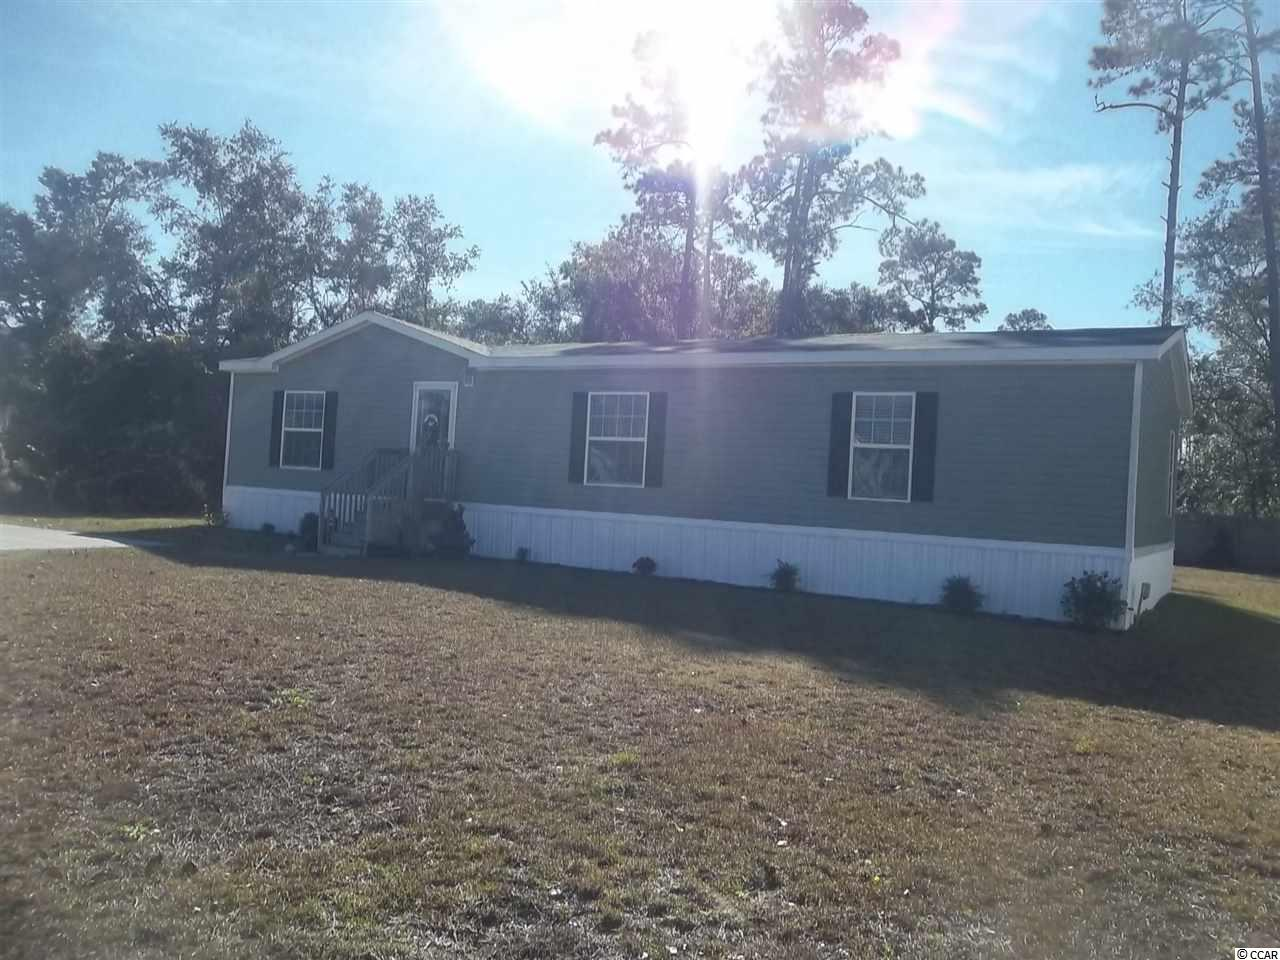 2016 model double wide. Home is in immaculate condition. 3 bedrooms, 2 baths/with laundry room off hall bath. Large, high, lot with detached storage.